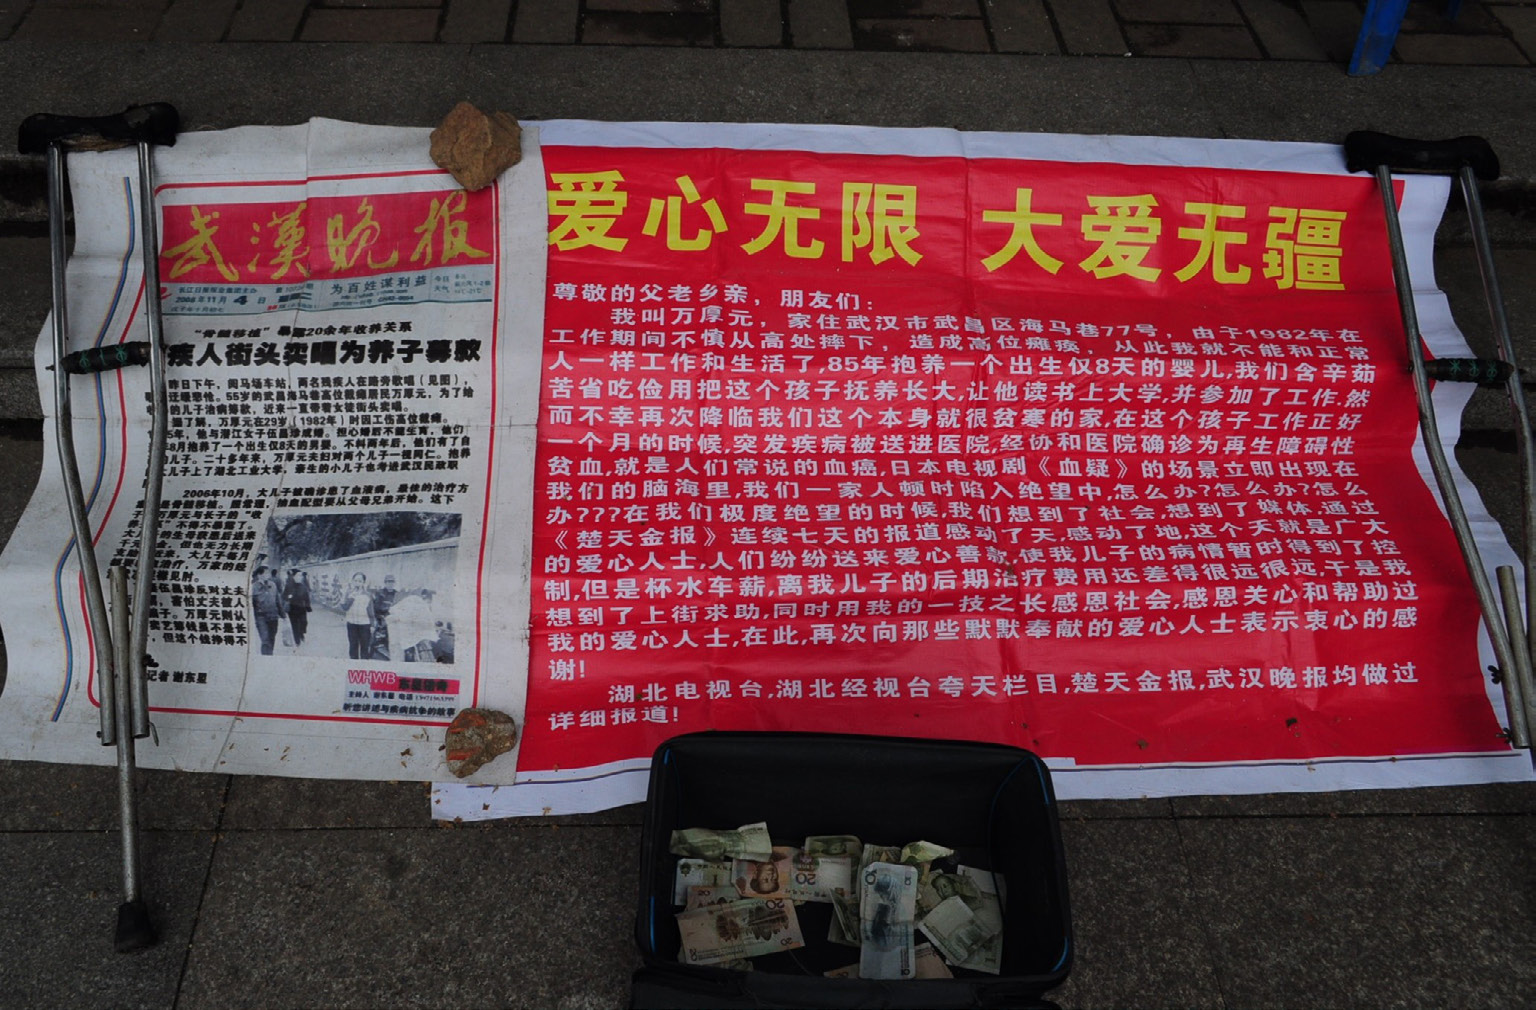 FIGURE-1.-Banner-displayed-at-Promoter-Zhuang's-park-stage.